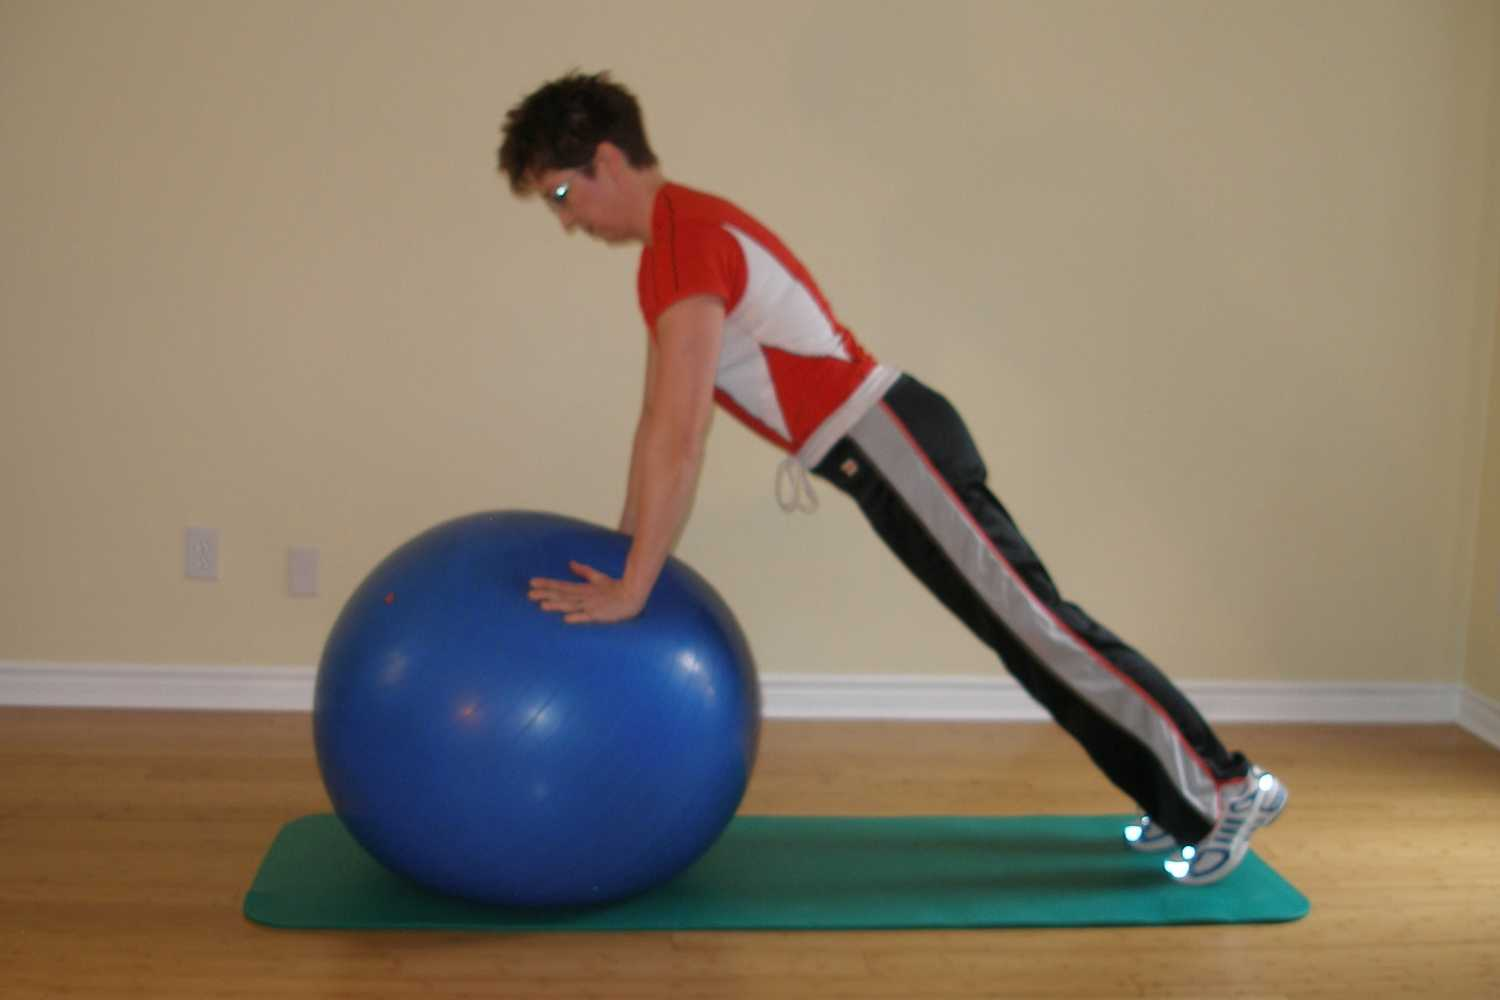 Standard push-up plus on the exercise ball